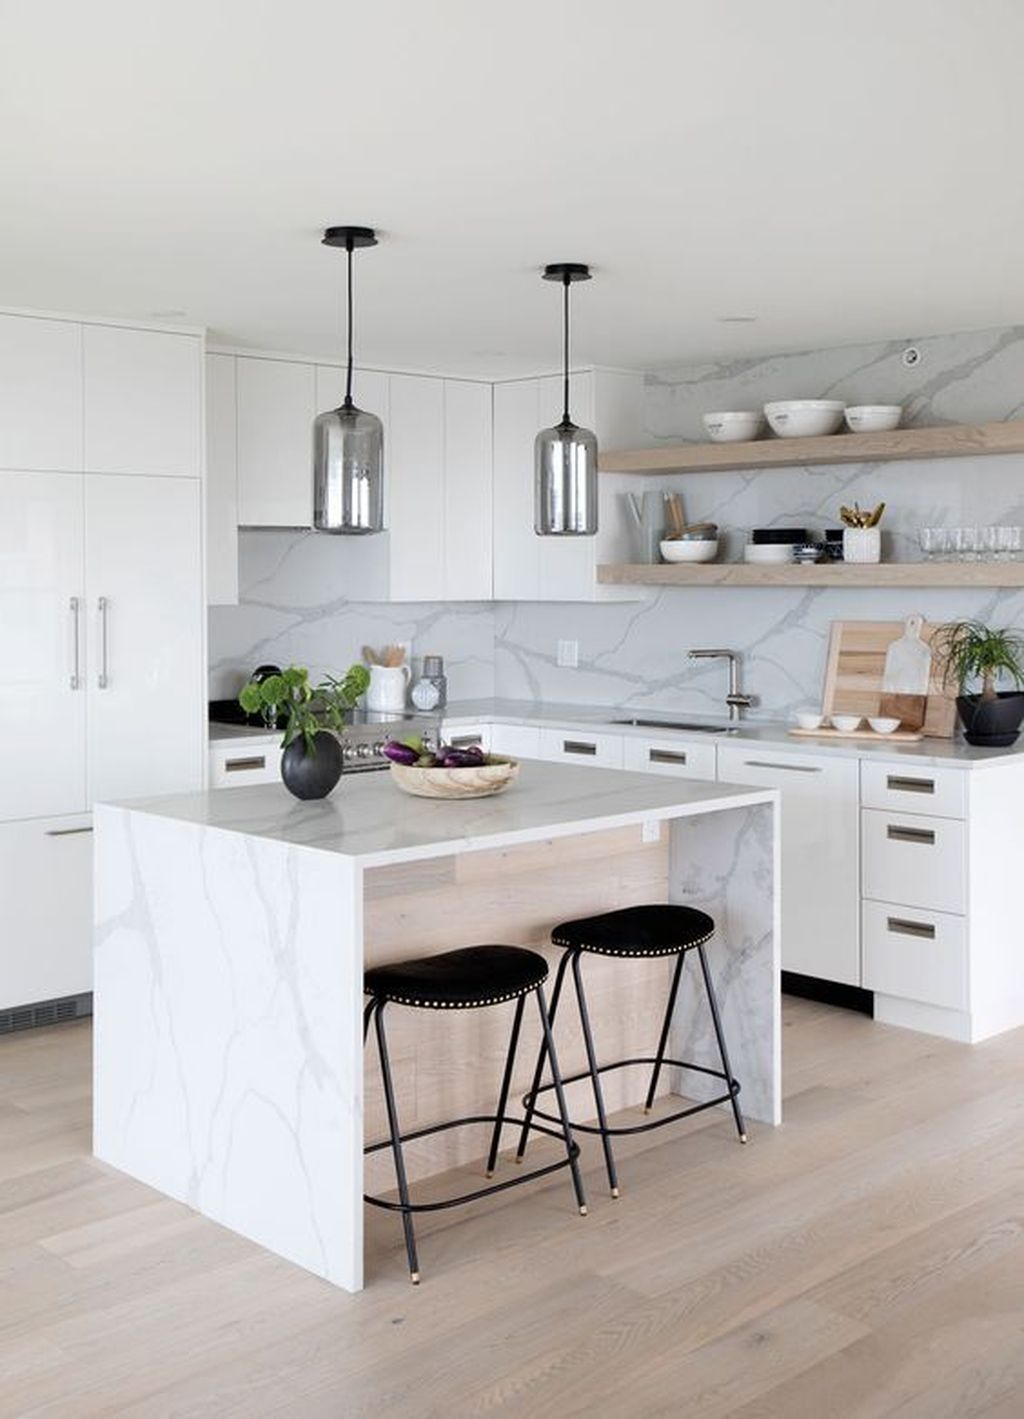 Amazing Modern White Kitchen Island Ideas Make The Kitchen Look Stylish Modern Kitchen Renovation Small Modern Kitchens White Modern Kitchen